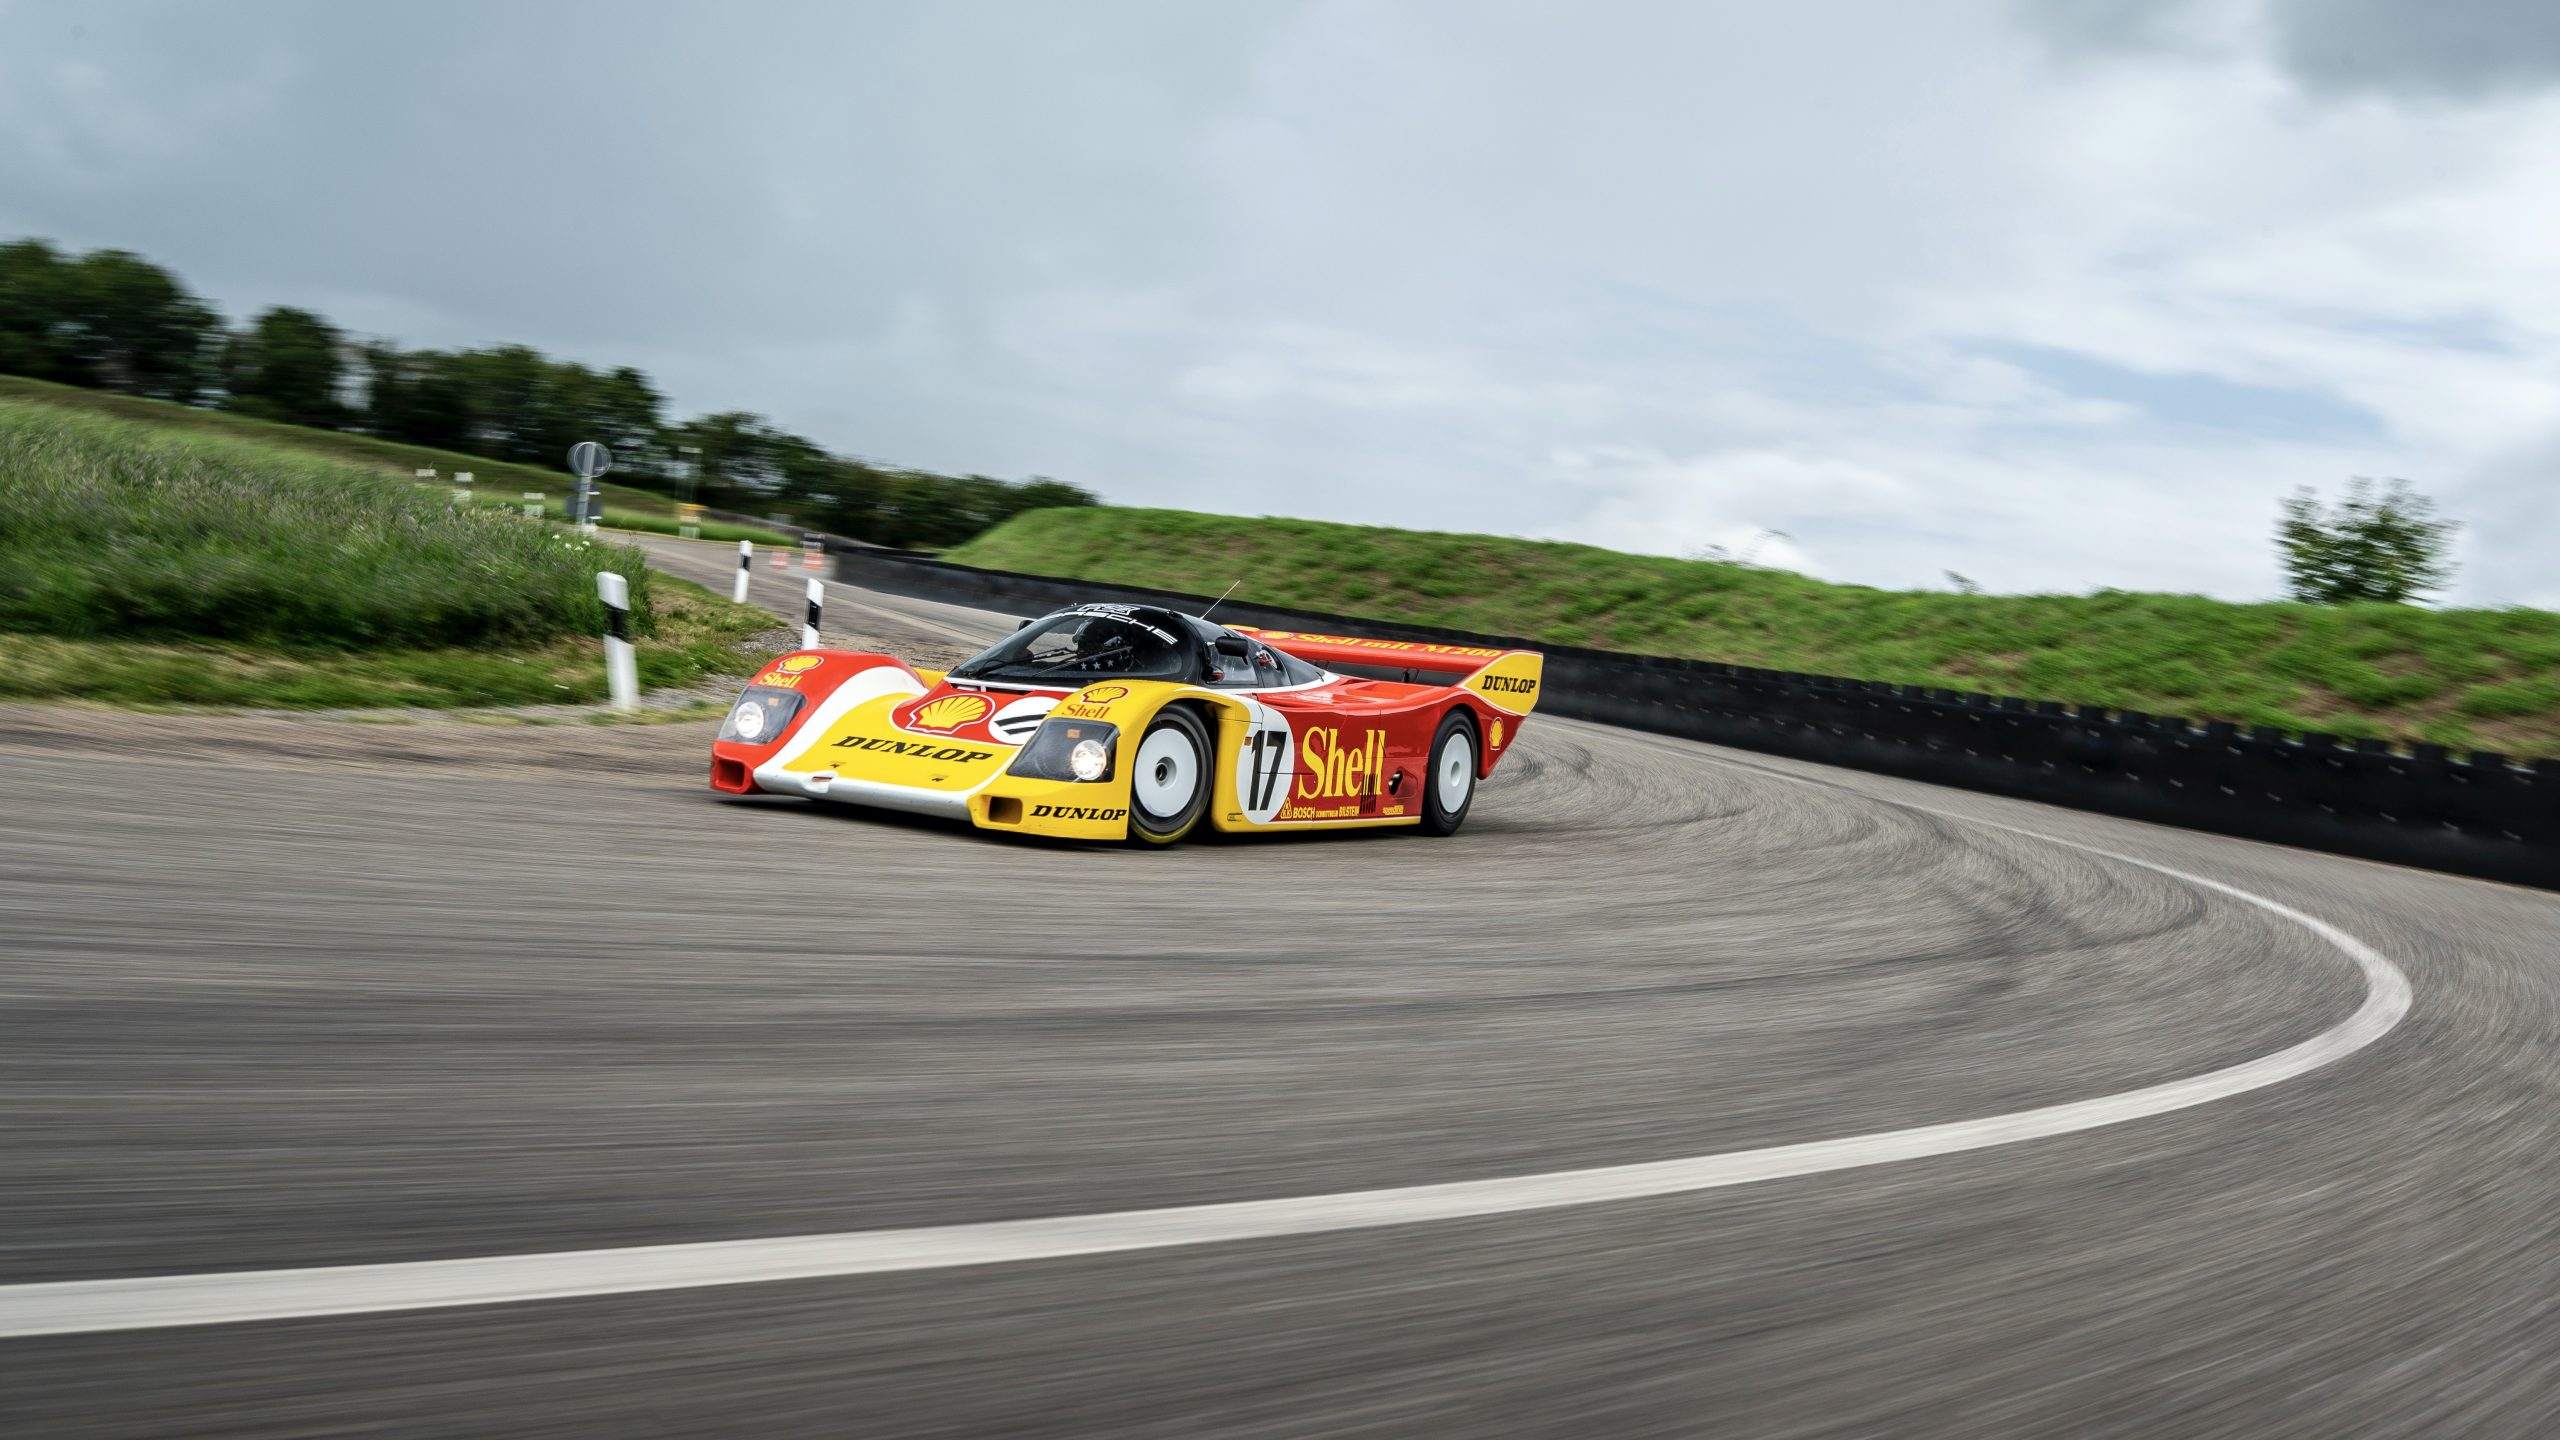 After 35 years, Porsche's factory-restored 962 C meets its original driver for a trackside reunion